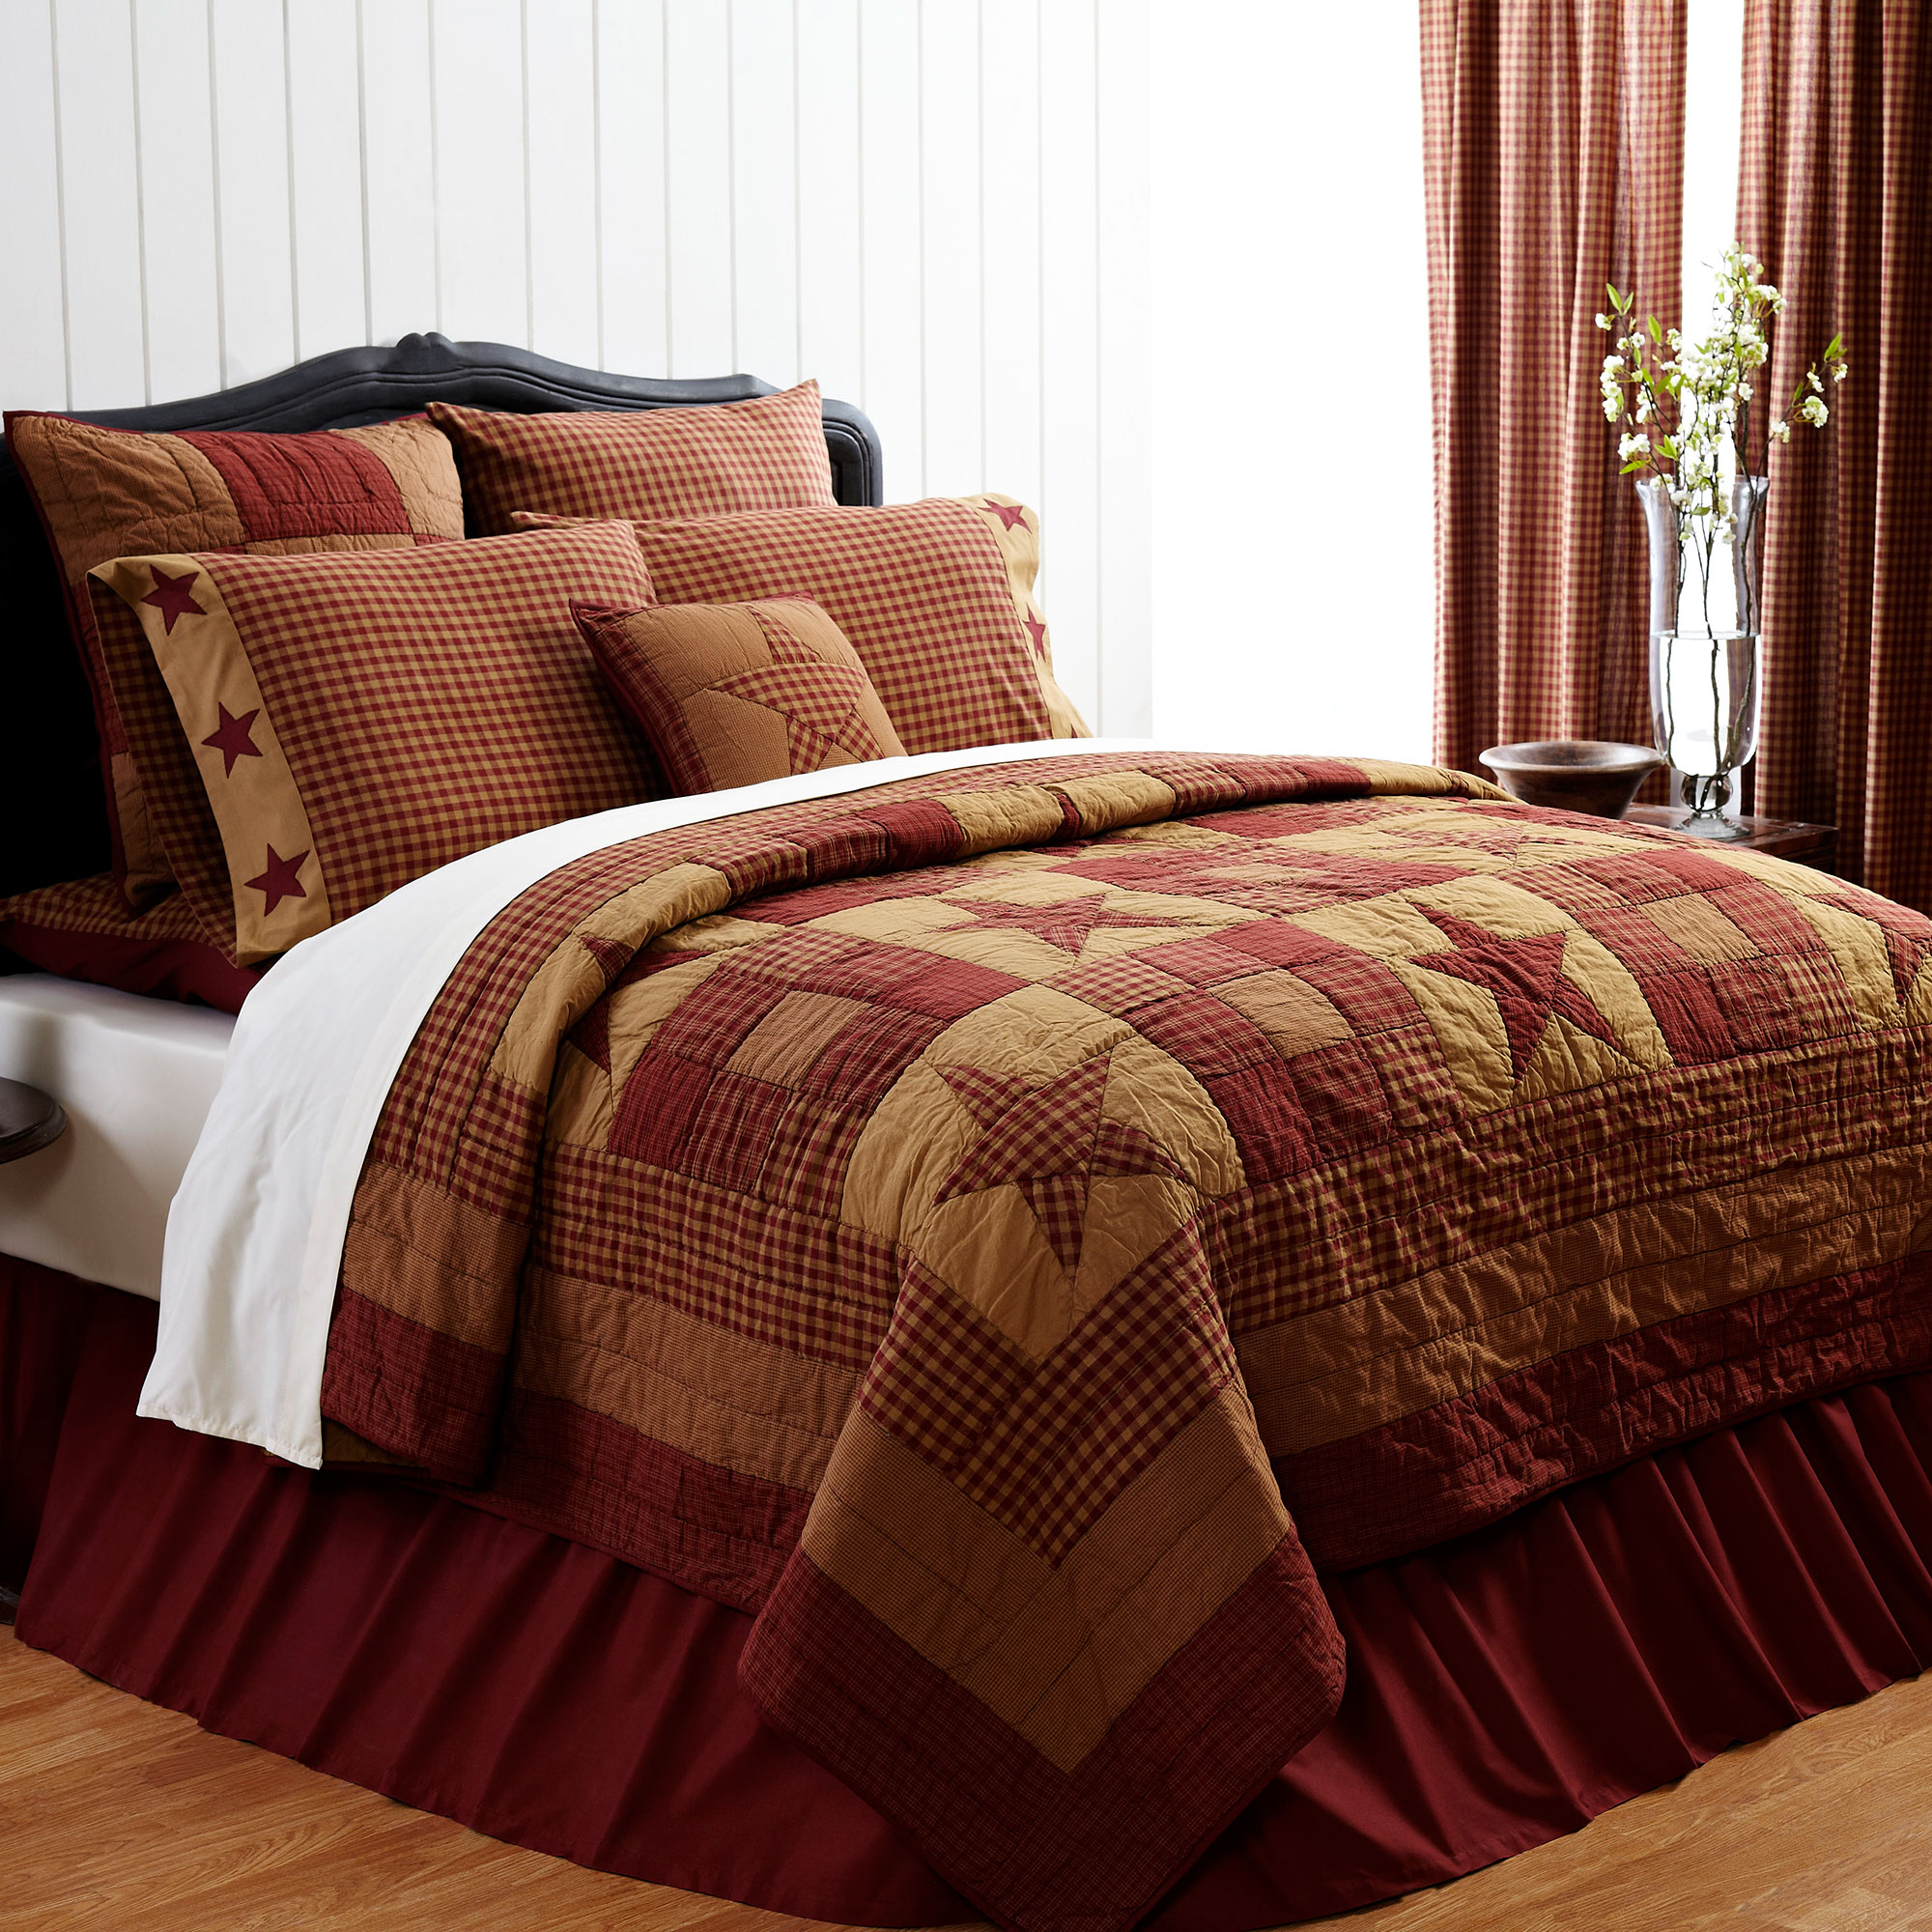 Ninepatch Star 3 Piece Burgundy Tan Country Quilt Set